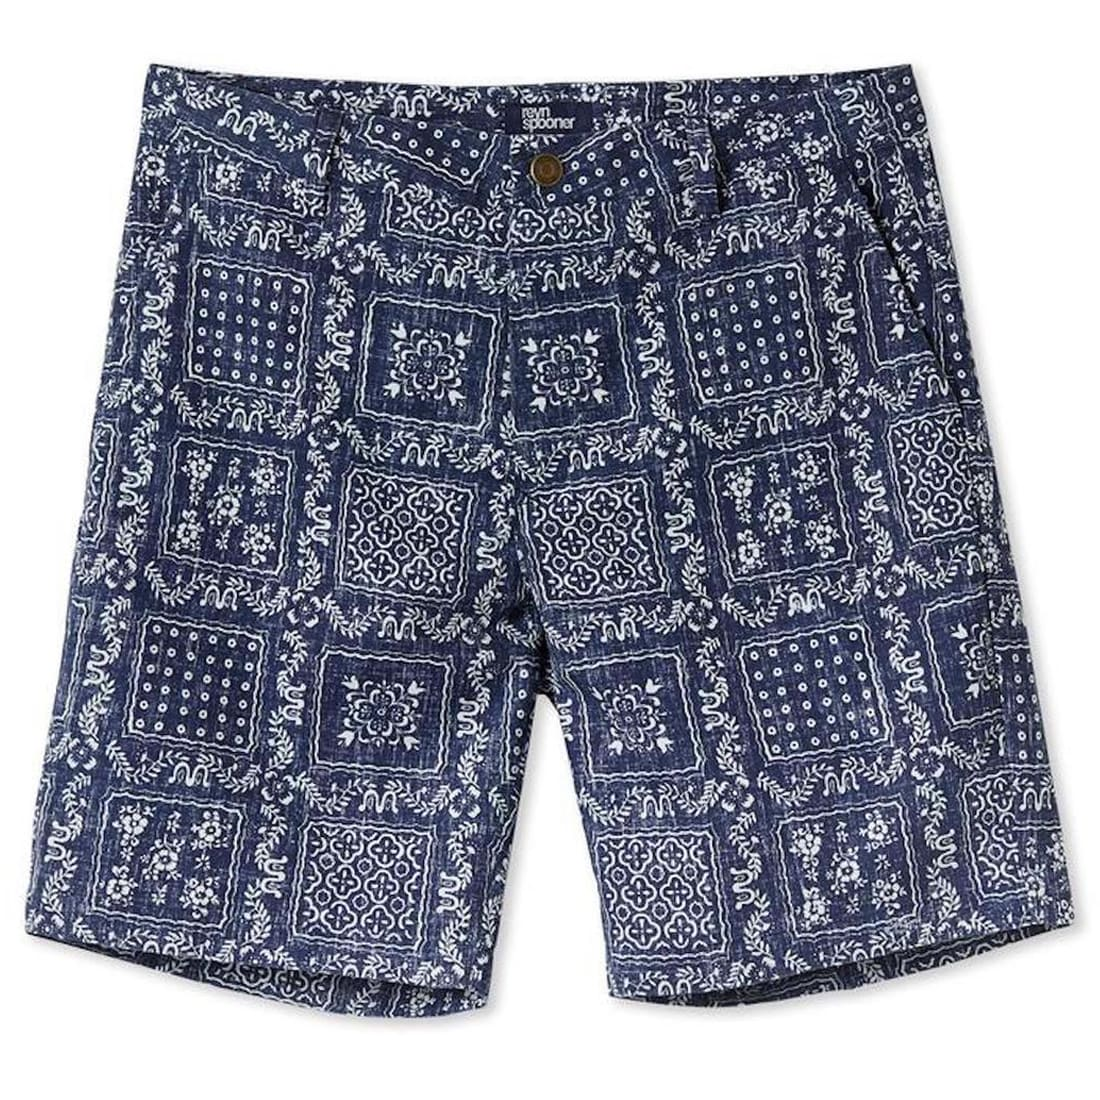 Original Lahaina Standard Fit Original Lahaina / Chino Shorts - For Men - 30 - Ink Blue From Reyn Spooner M461280518-INK-30